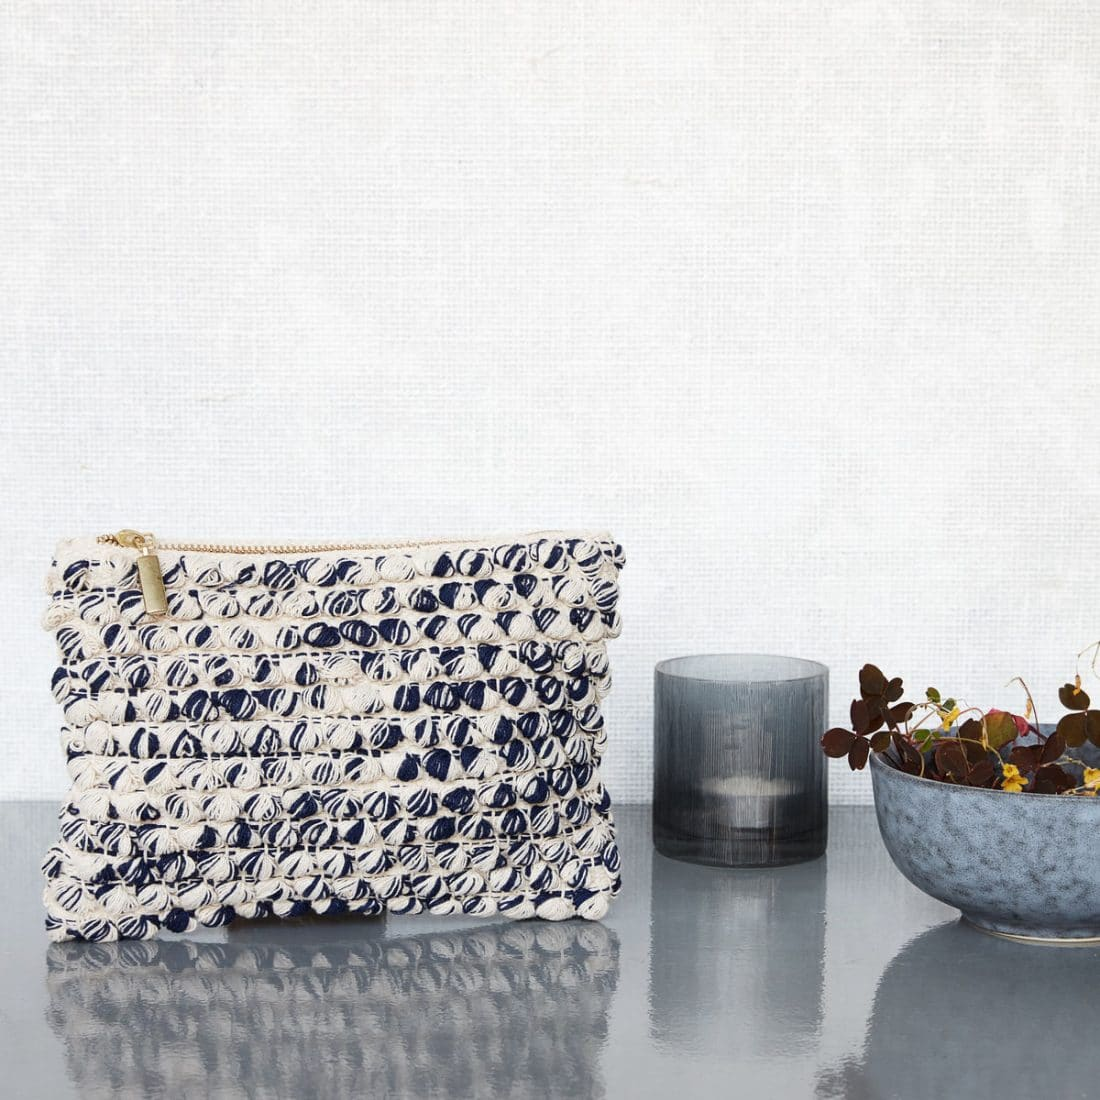 Trp Post Container Data Trp Post Id 11295 Clutch Blauw Wit Met Gouden Rits Trp Post Container